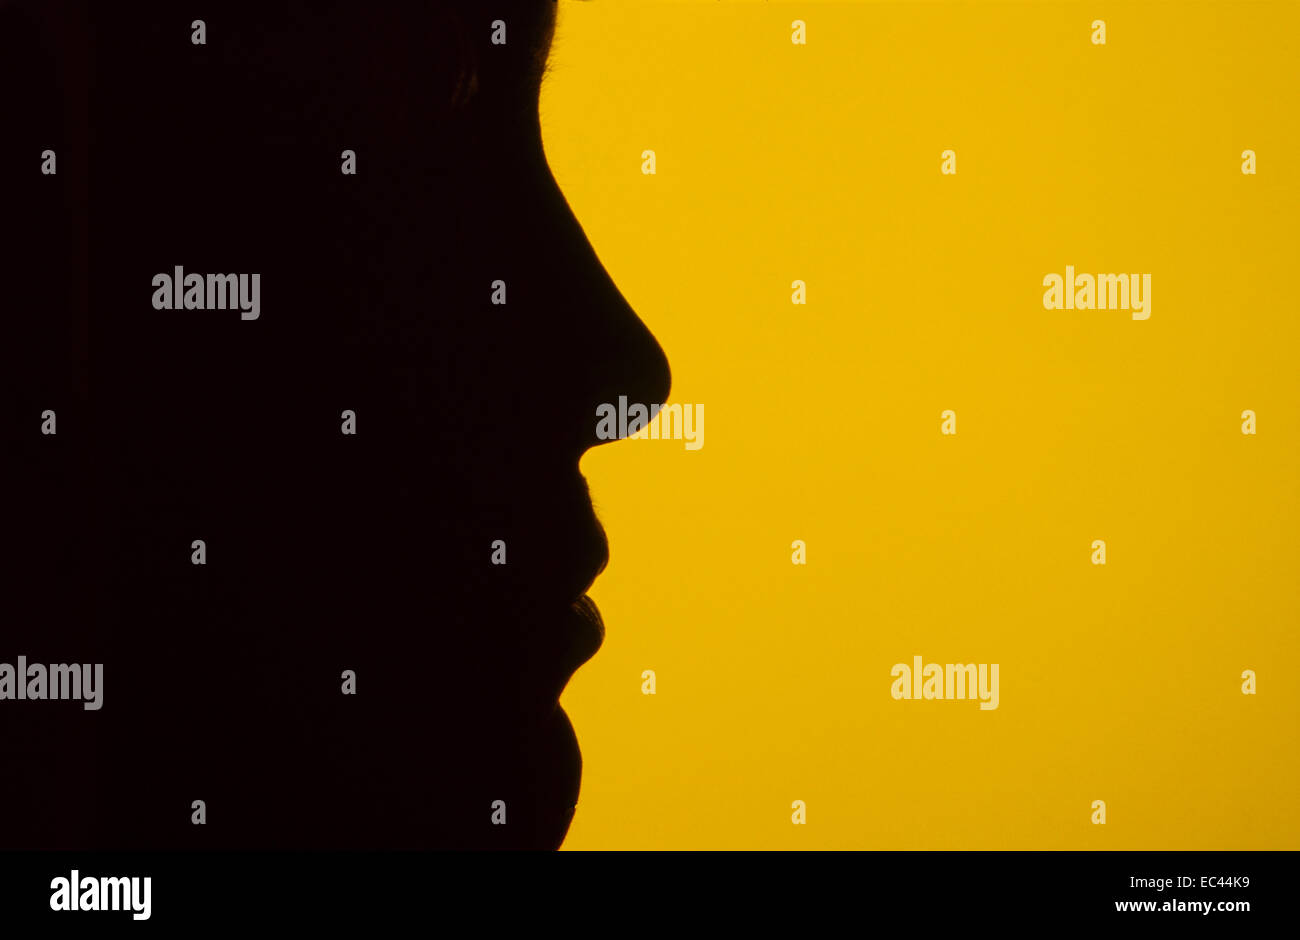 right nose - Stock Image